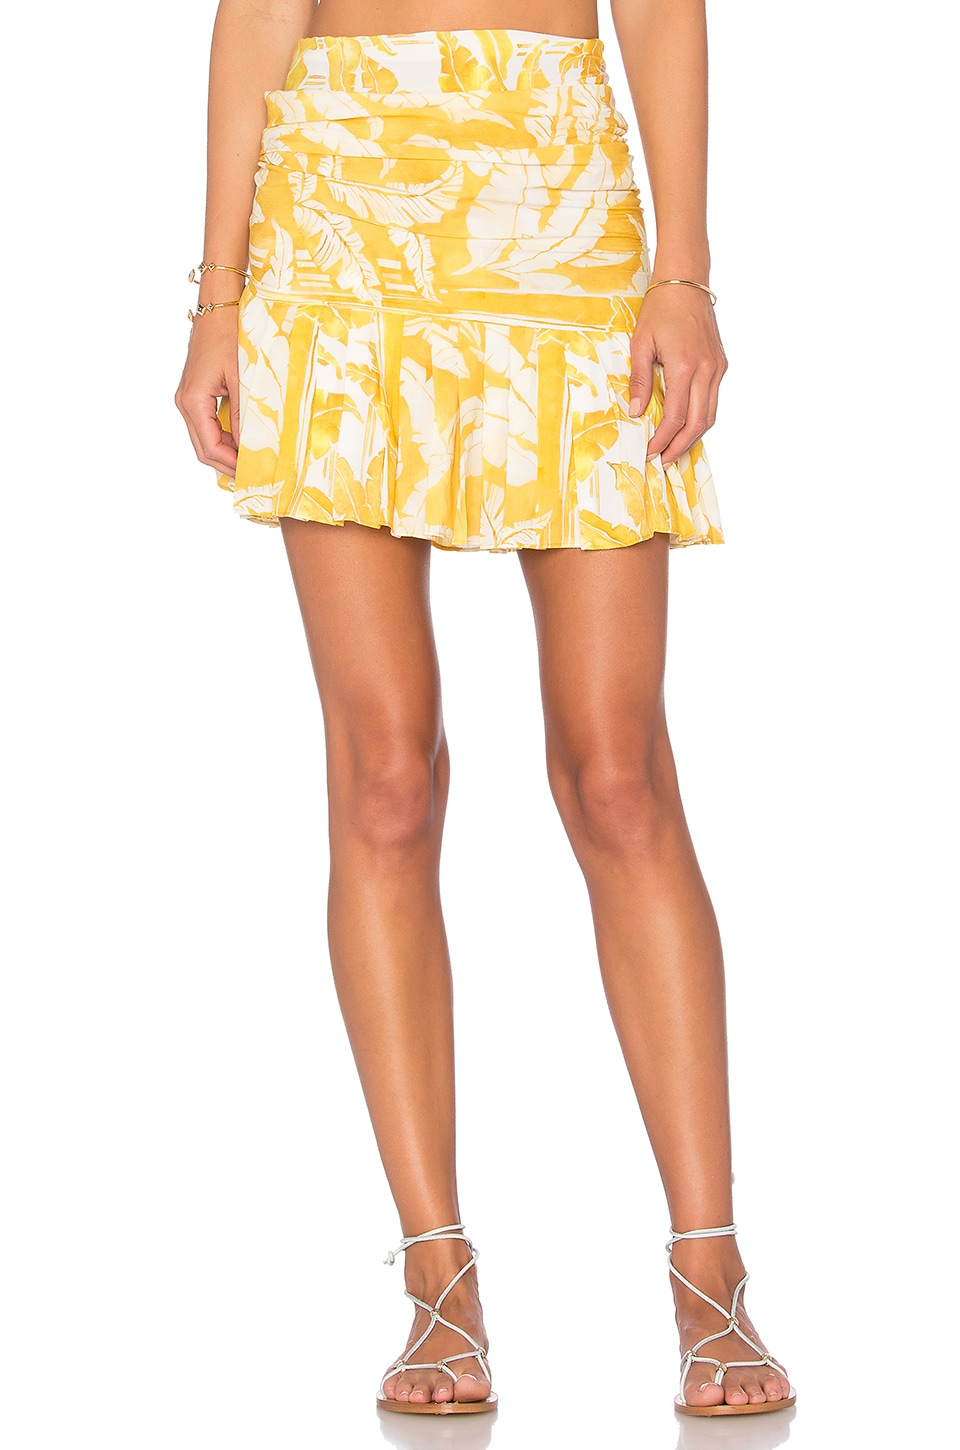 ADRIANA DEGREAS Tropical Leaves Skirt in Yellow